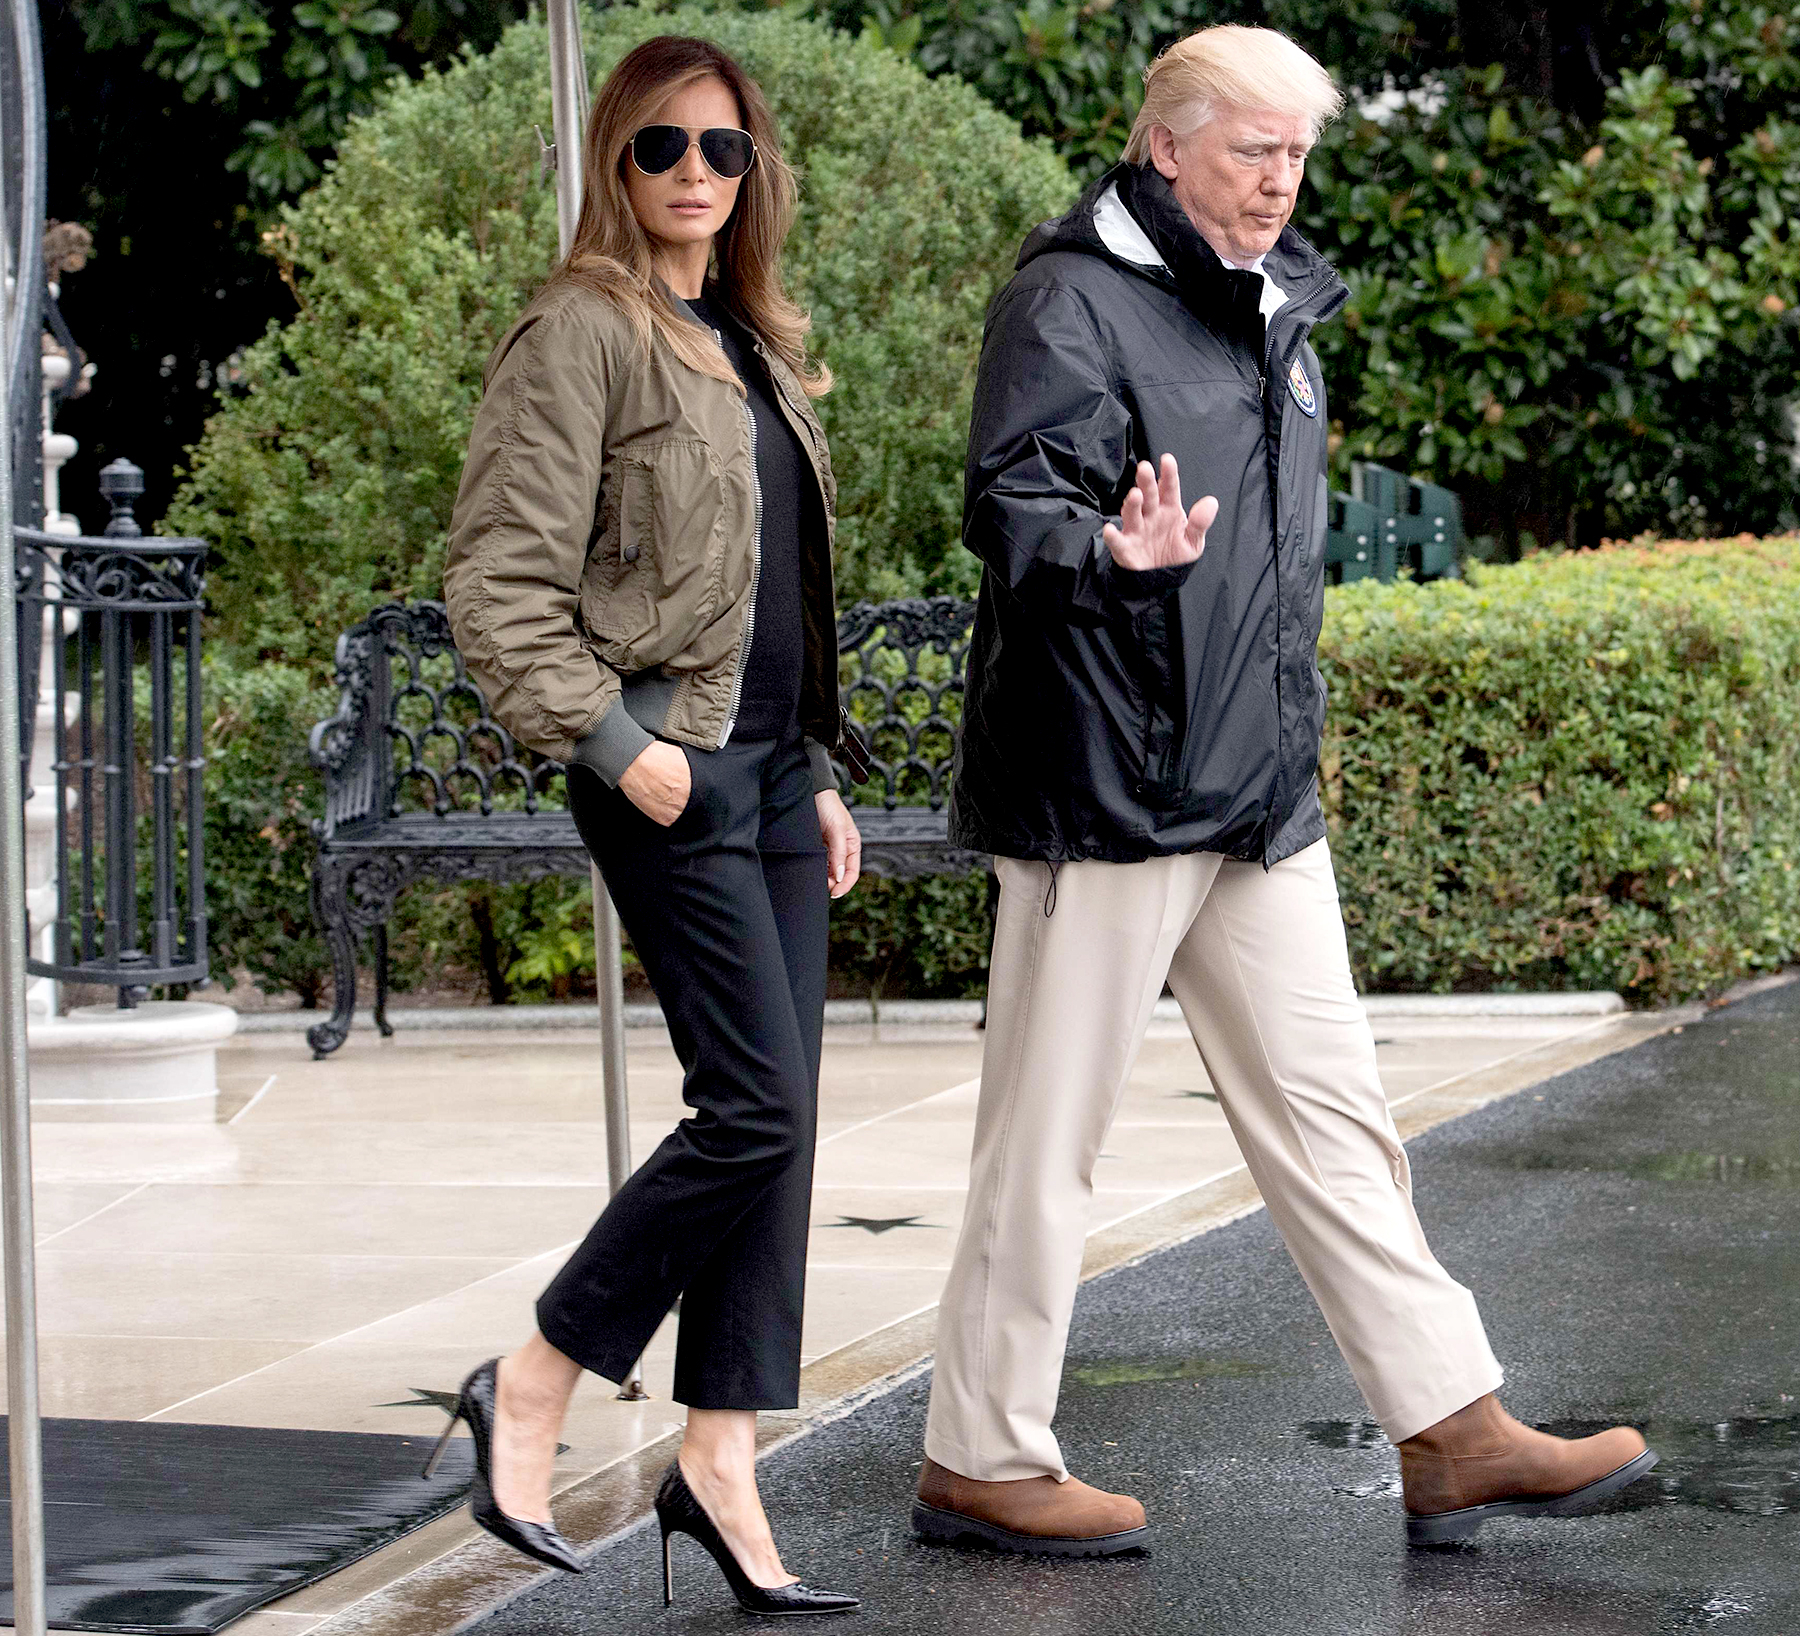 US President Donald Trump and First Lady Melania Trump depart the White House in Washington, DC, on August 29, 2017 for Texas to view the damage caused by Hurricane Harvey.